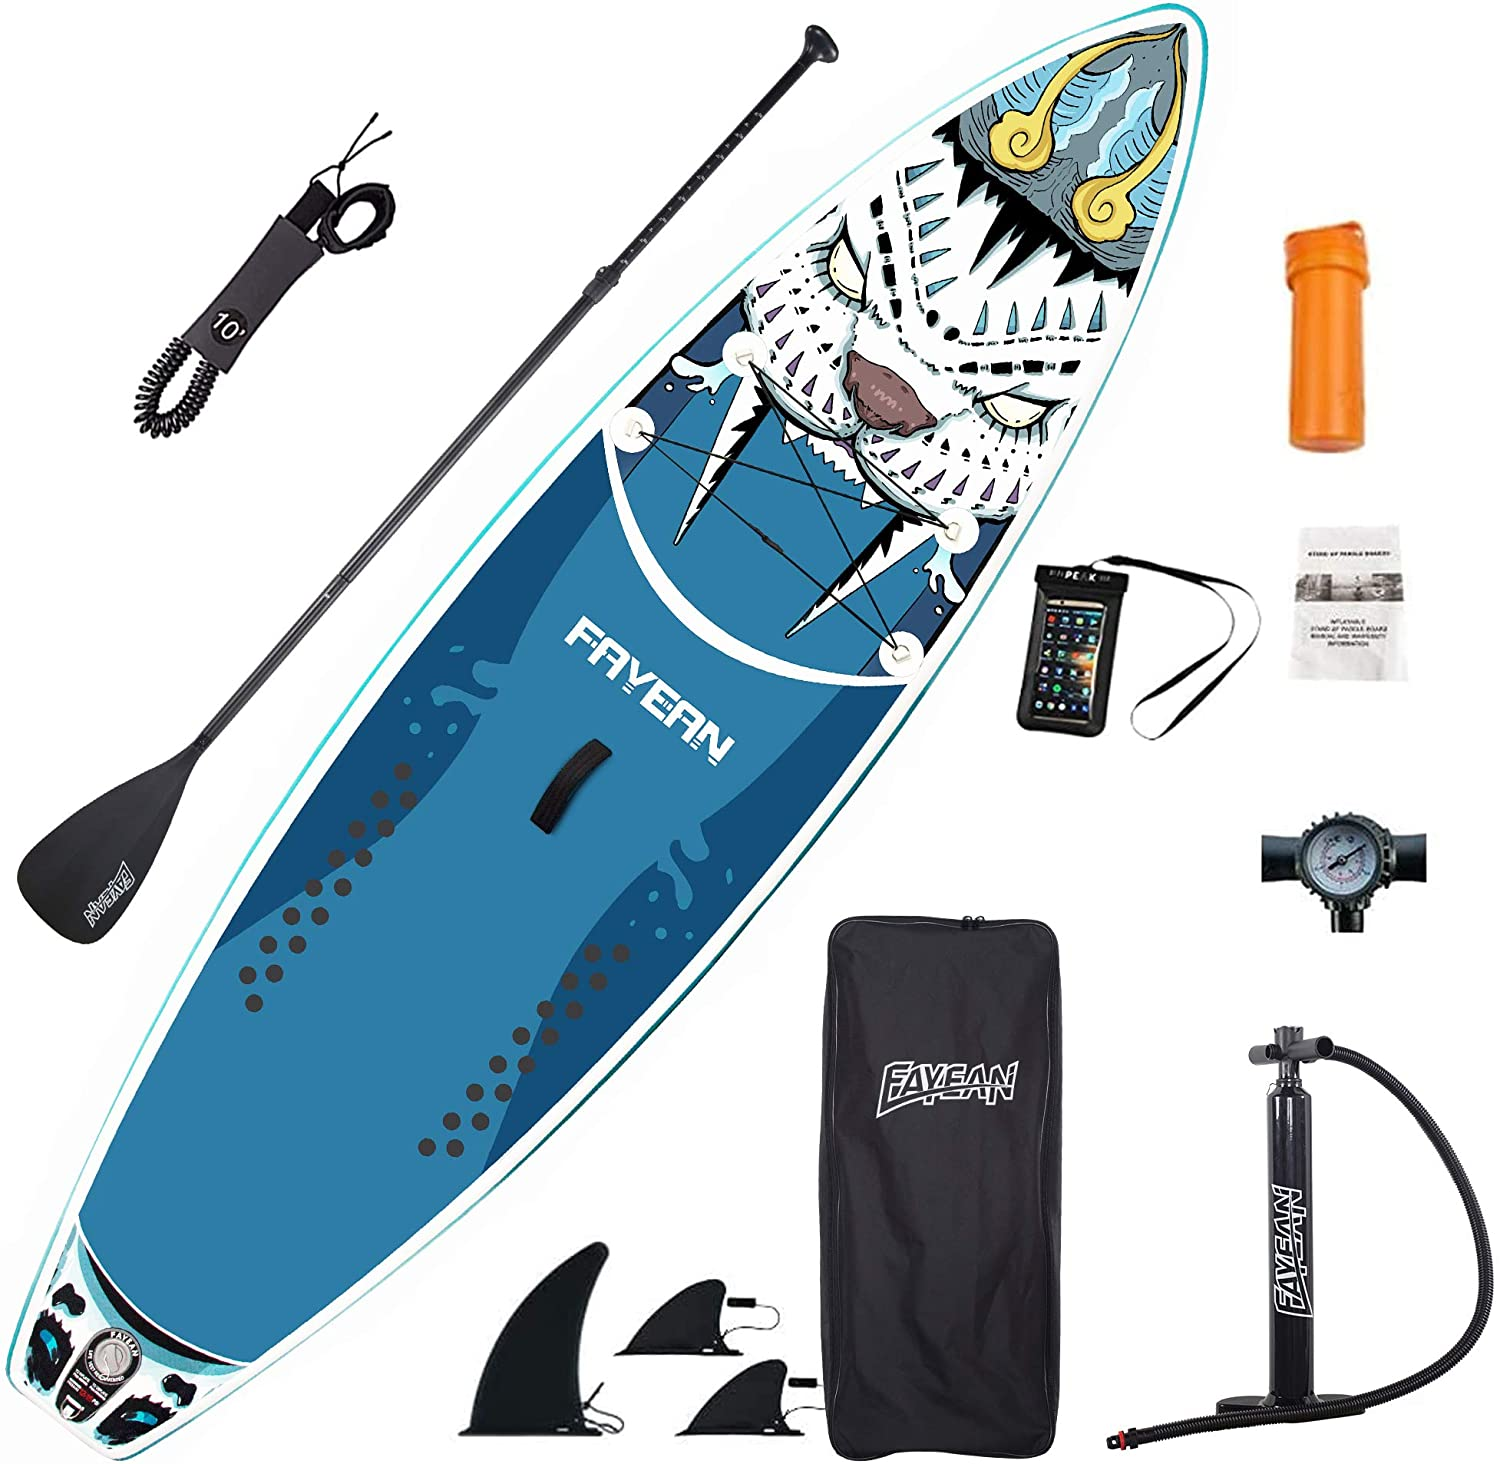 Fayean cheap inflatable paddle board